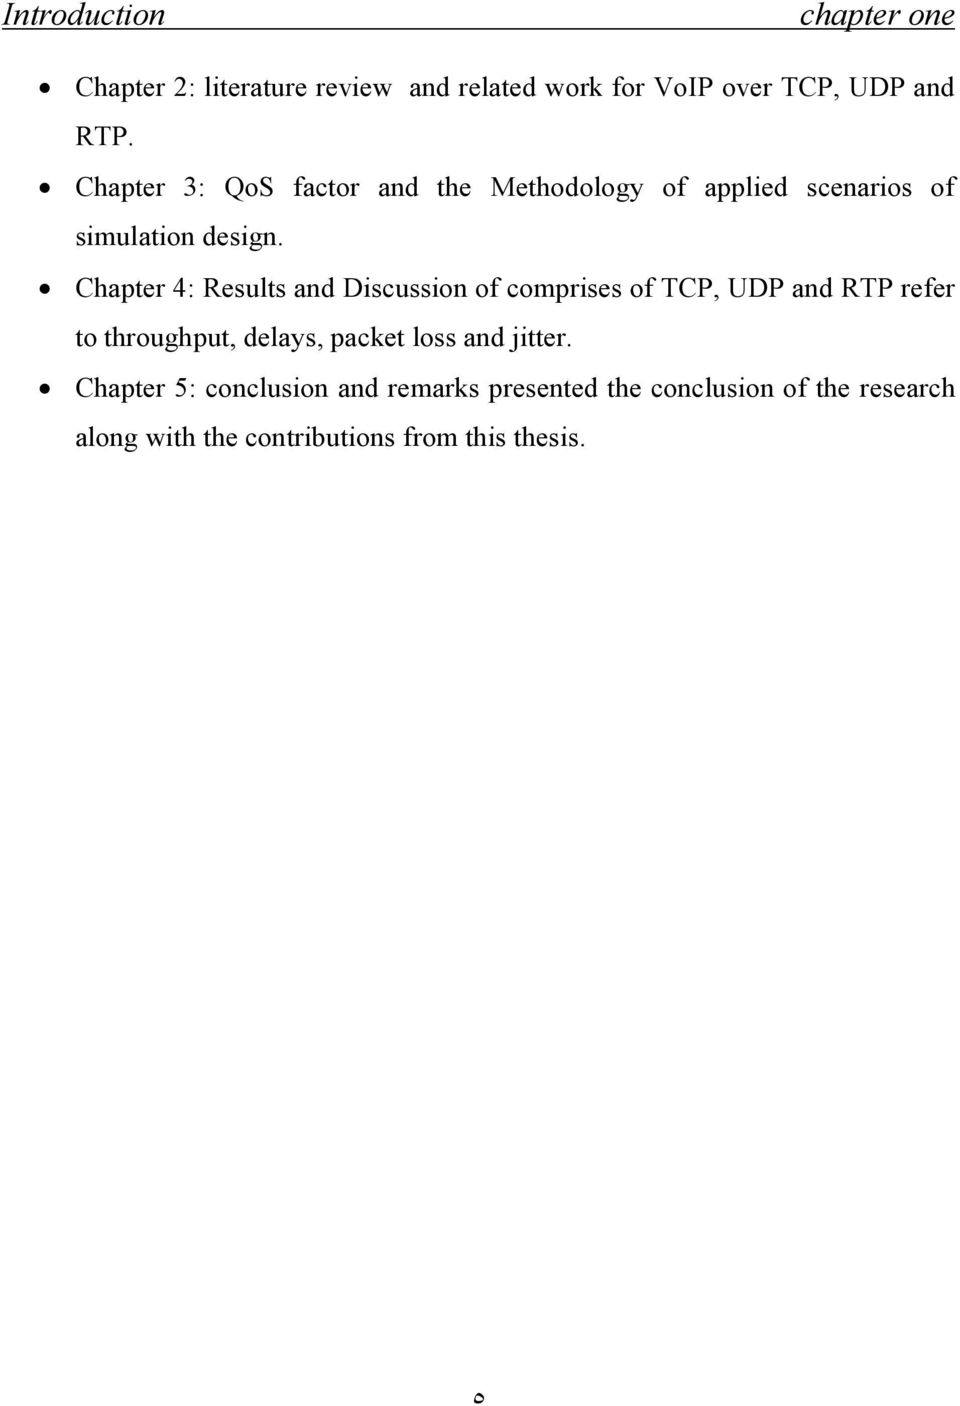 Chapter 4: Results and Discussion of comprises of TCP, UDP and RTP refer to throughput, delays,